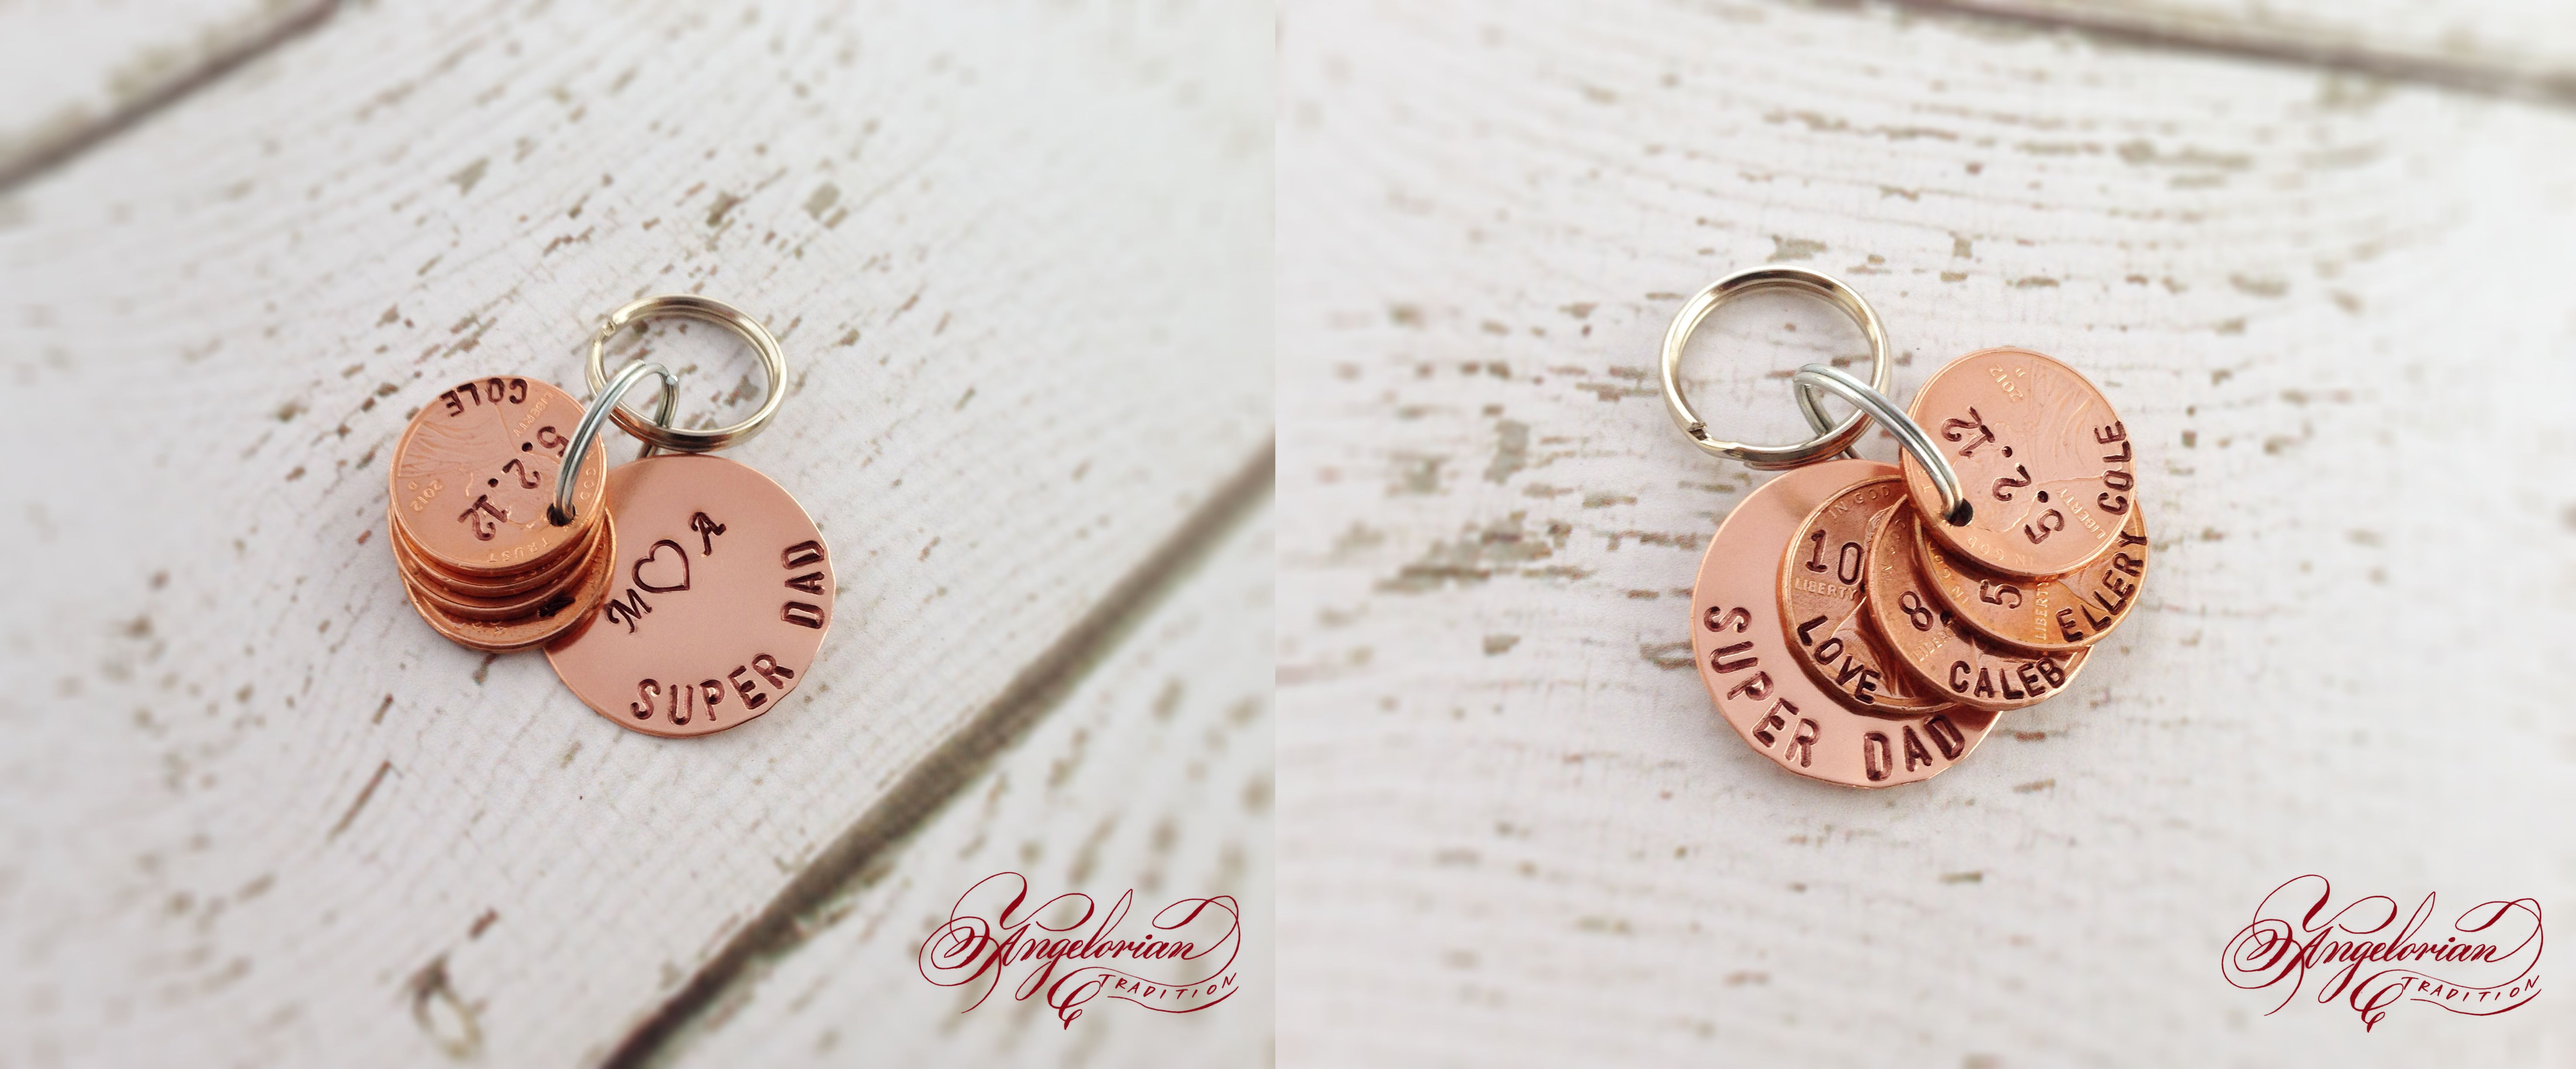 Super Dad Keychain! Date pennies custom made for each special child♥ #Dad #Gift